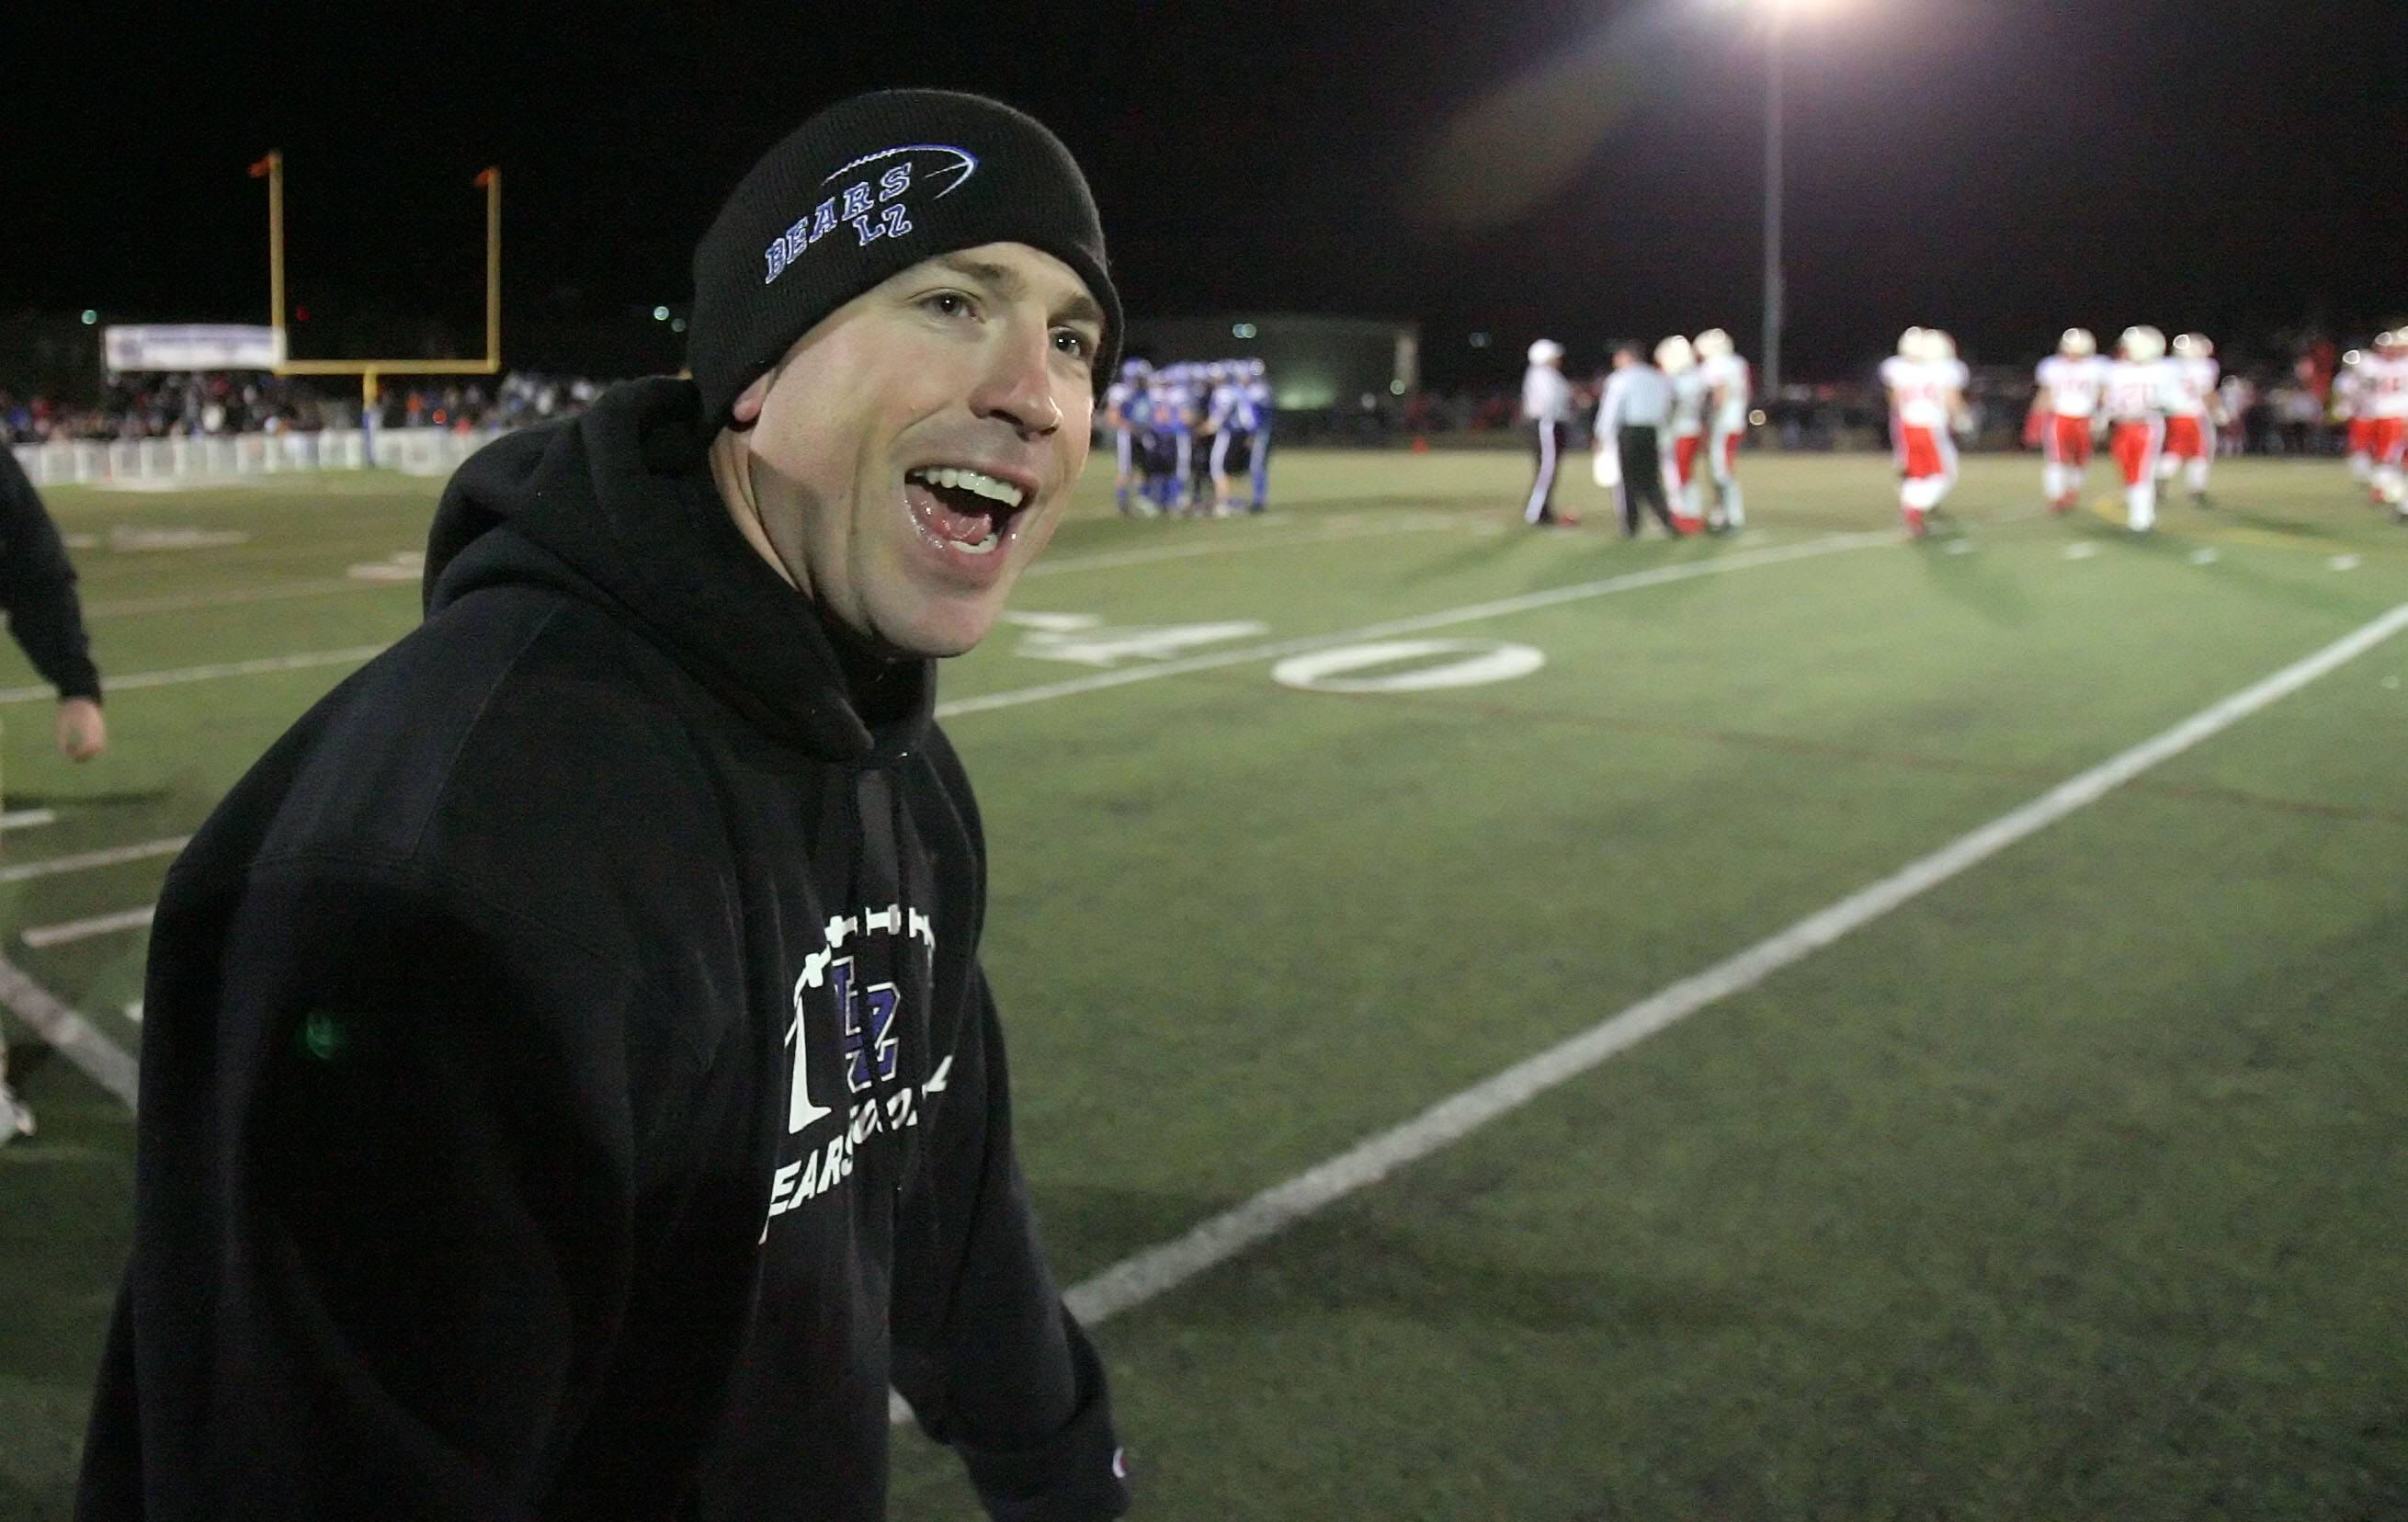 Bryan Stortz celebrates after Lake Zurich defeated St. Rita 21-0 in the Class 7A football semifinals in 2010. Stortz, most recently the football coach and athletic director at Rock Island, will be Conant's next football head coach.